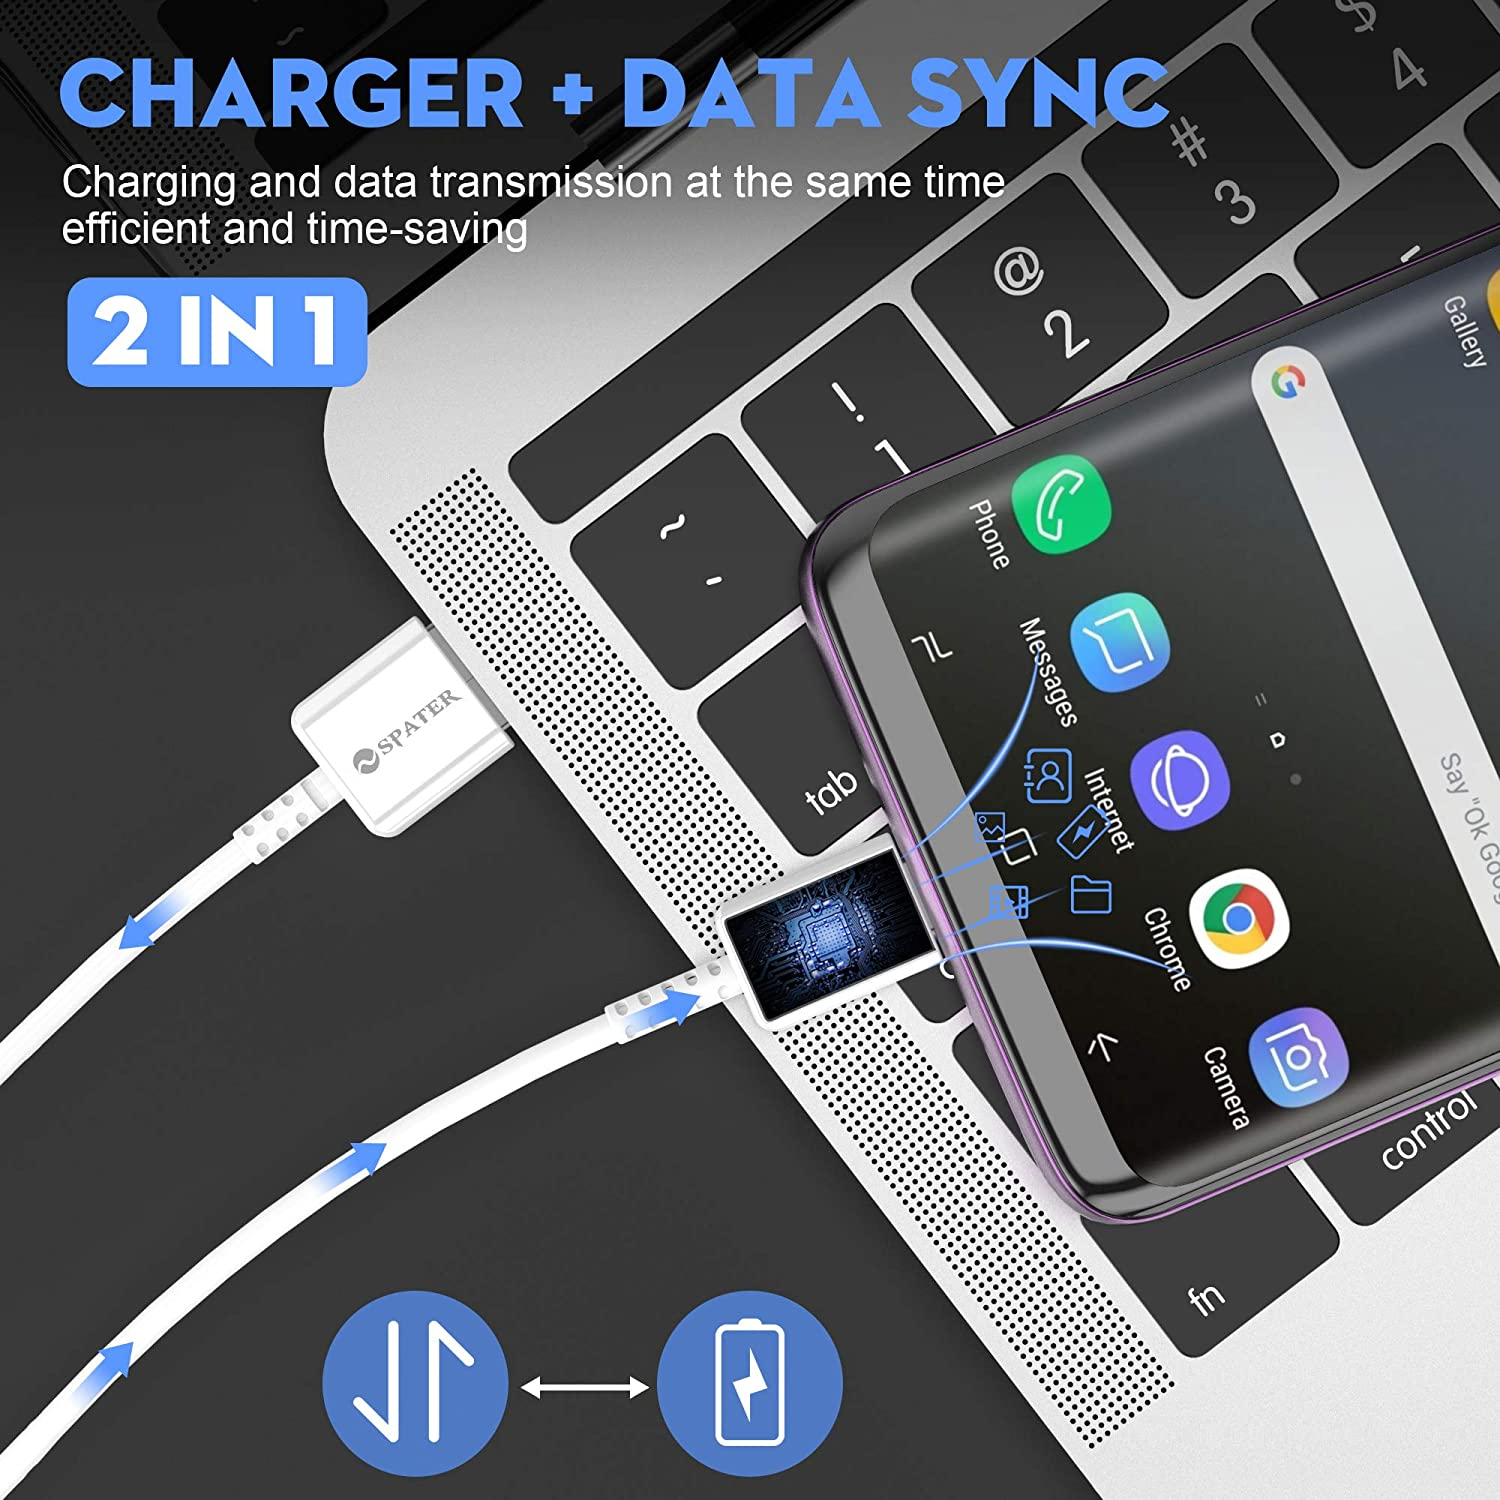 Note8// Note9 Compatible with Samsung Galaxy S10// S8// S9 Spater Adaptive Fast Charging Wall Charger Kit Set with USB-C Cable White